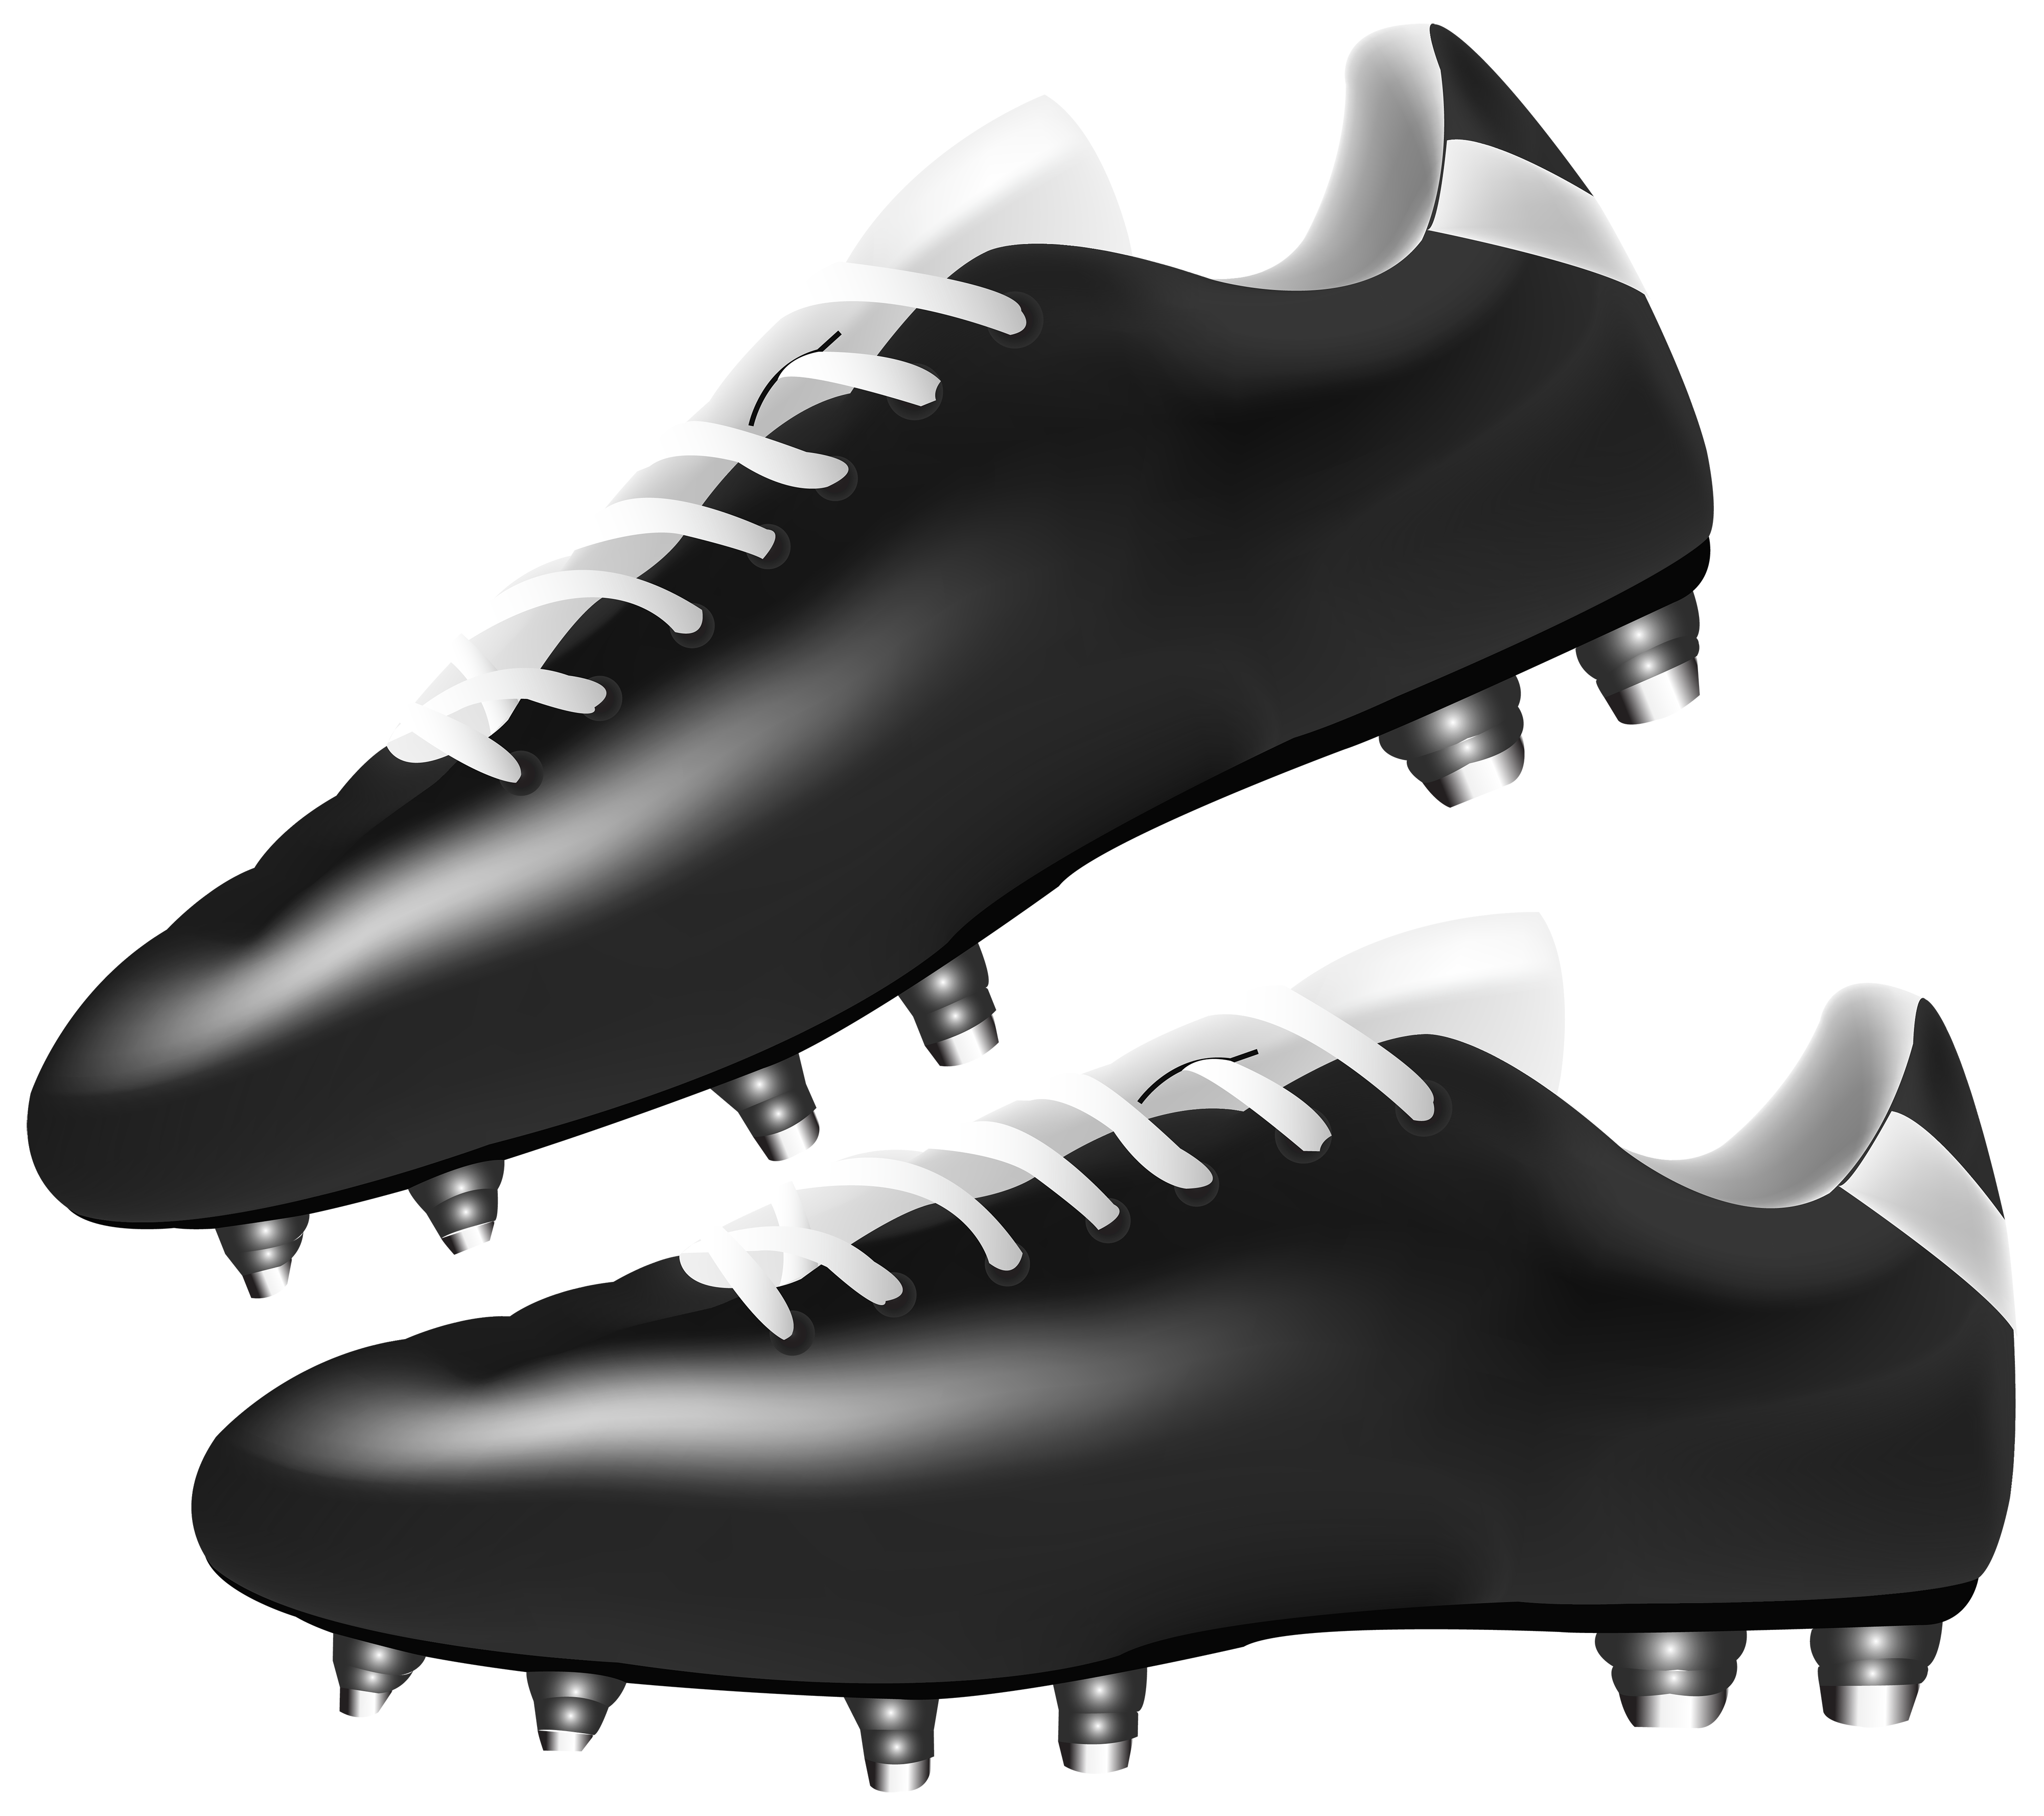 vector download Soccer cleats clipart. Black football boots png